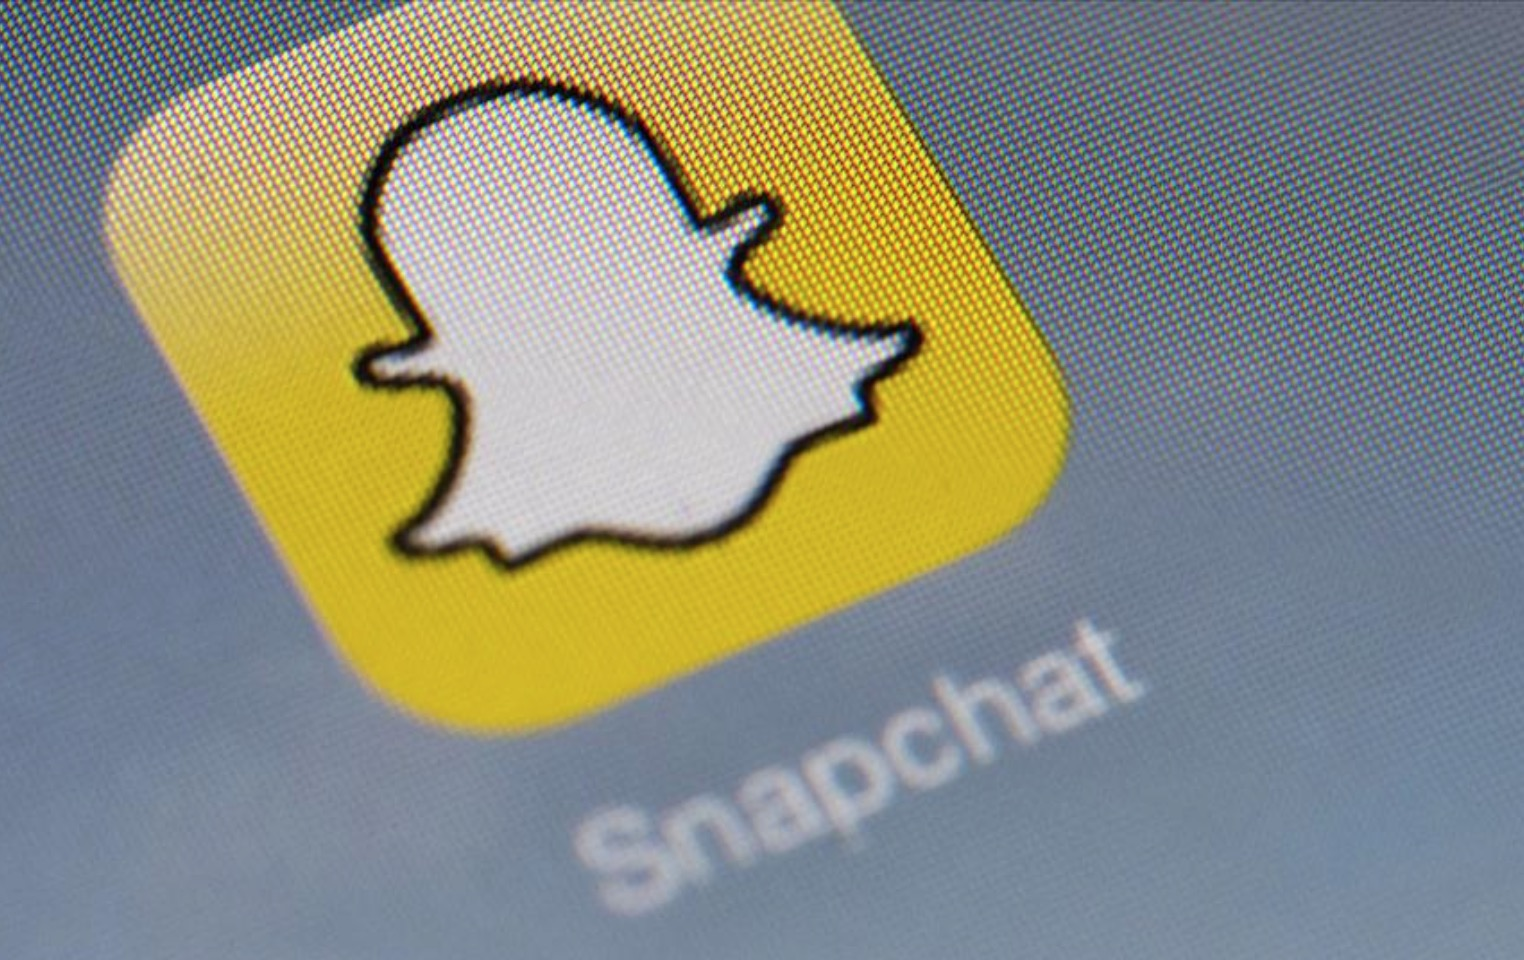 How To Save Snapchats Without Your Friends Knowing